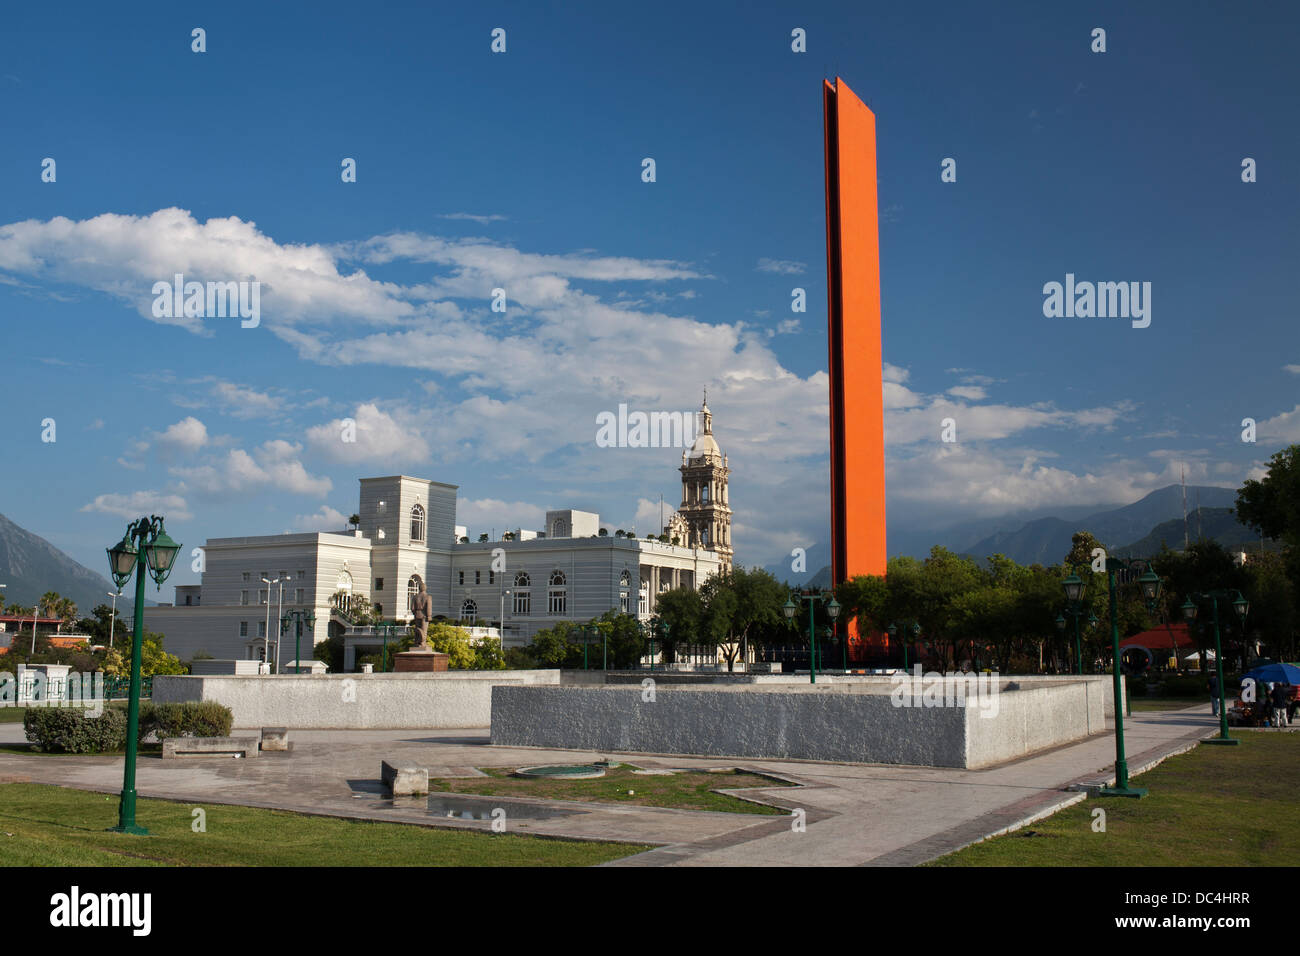 The Macroplaza in the centre of Monterrey, Mexico. Stock Photo